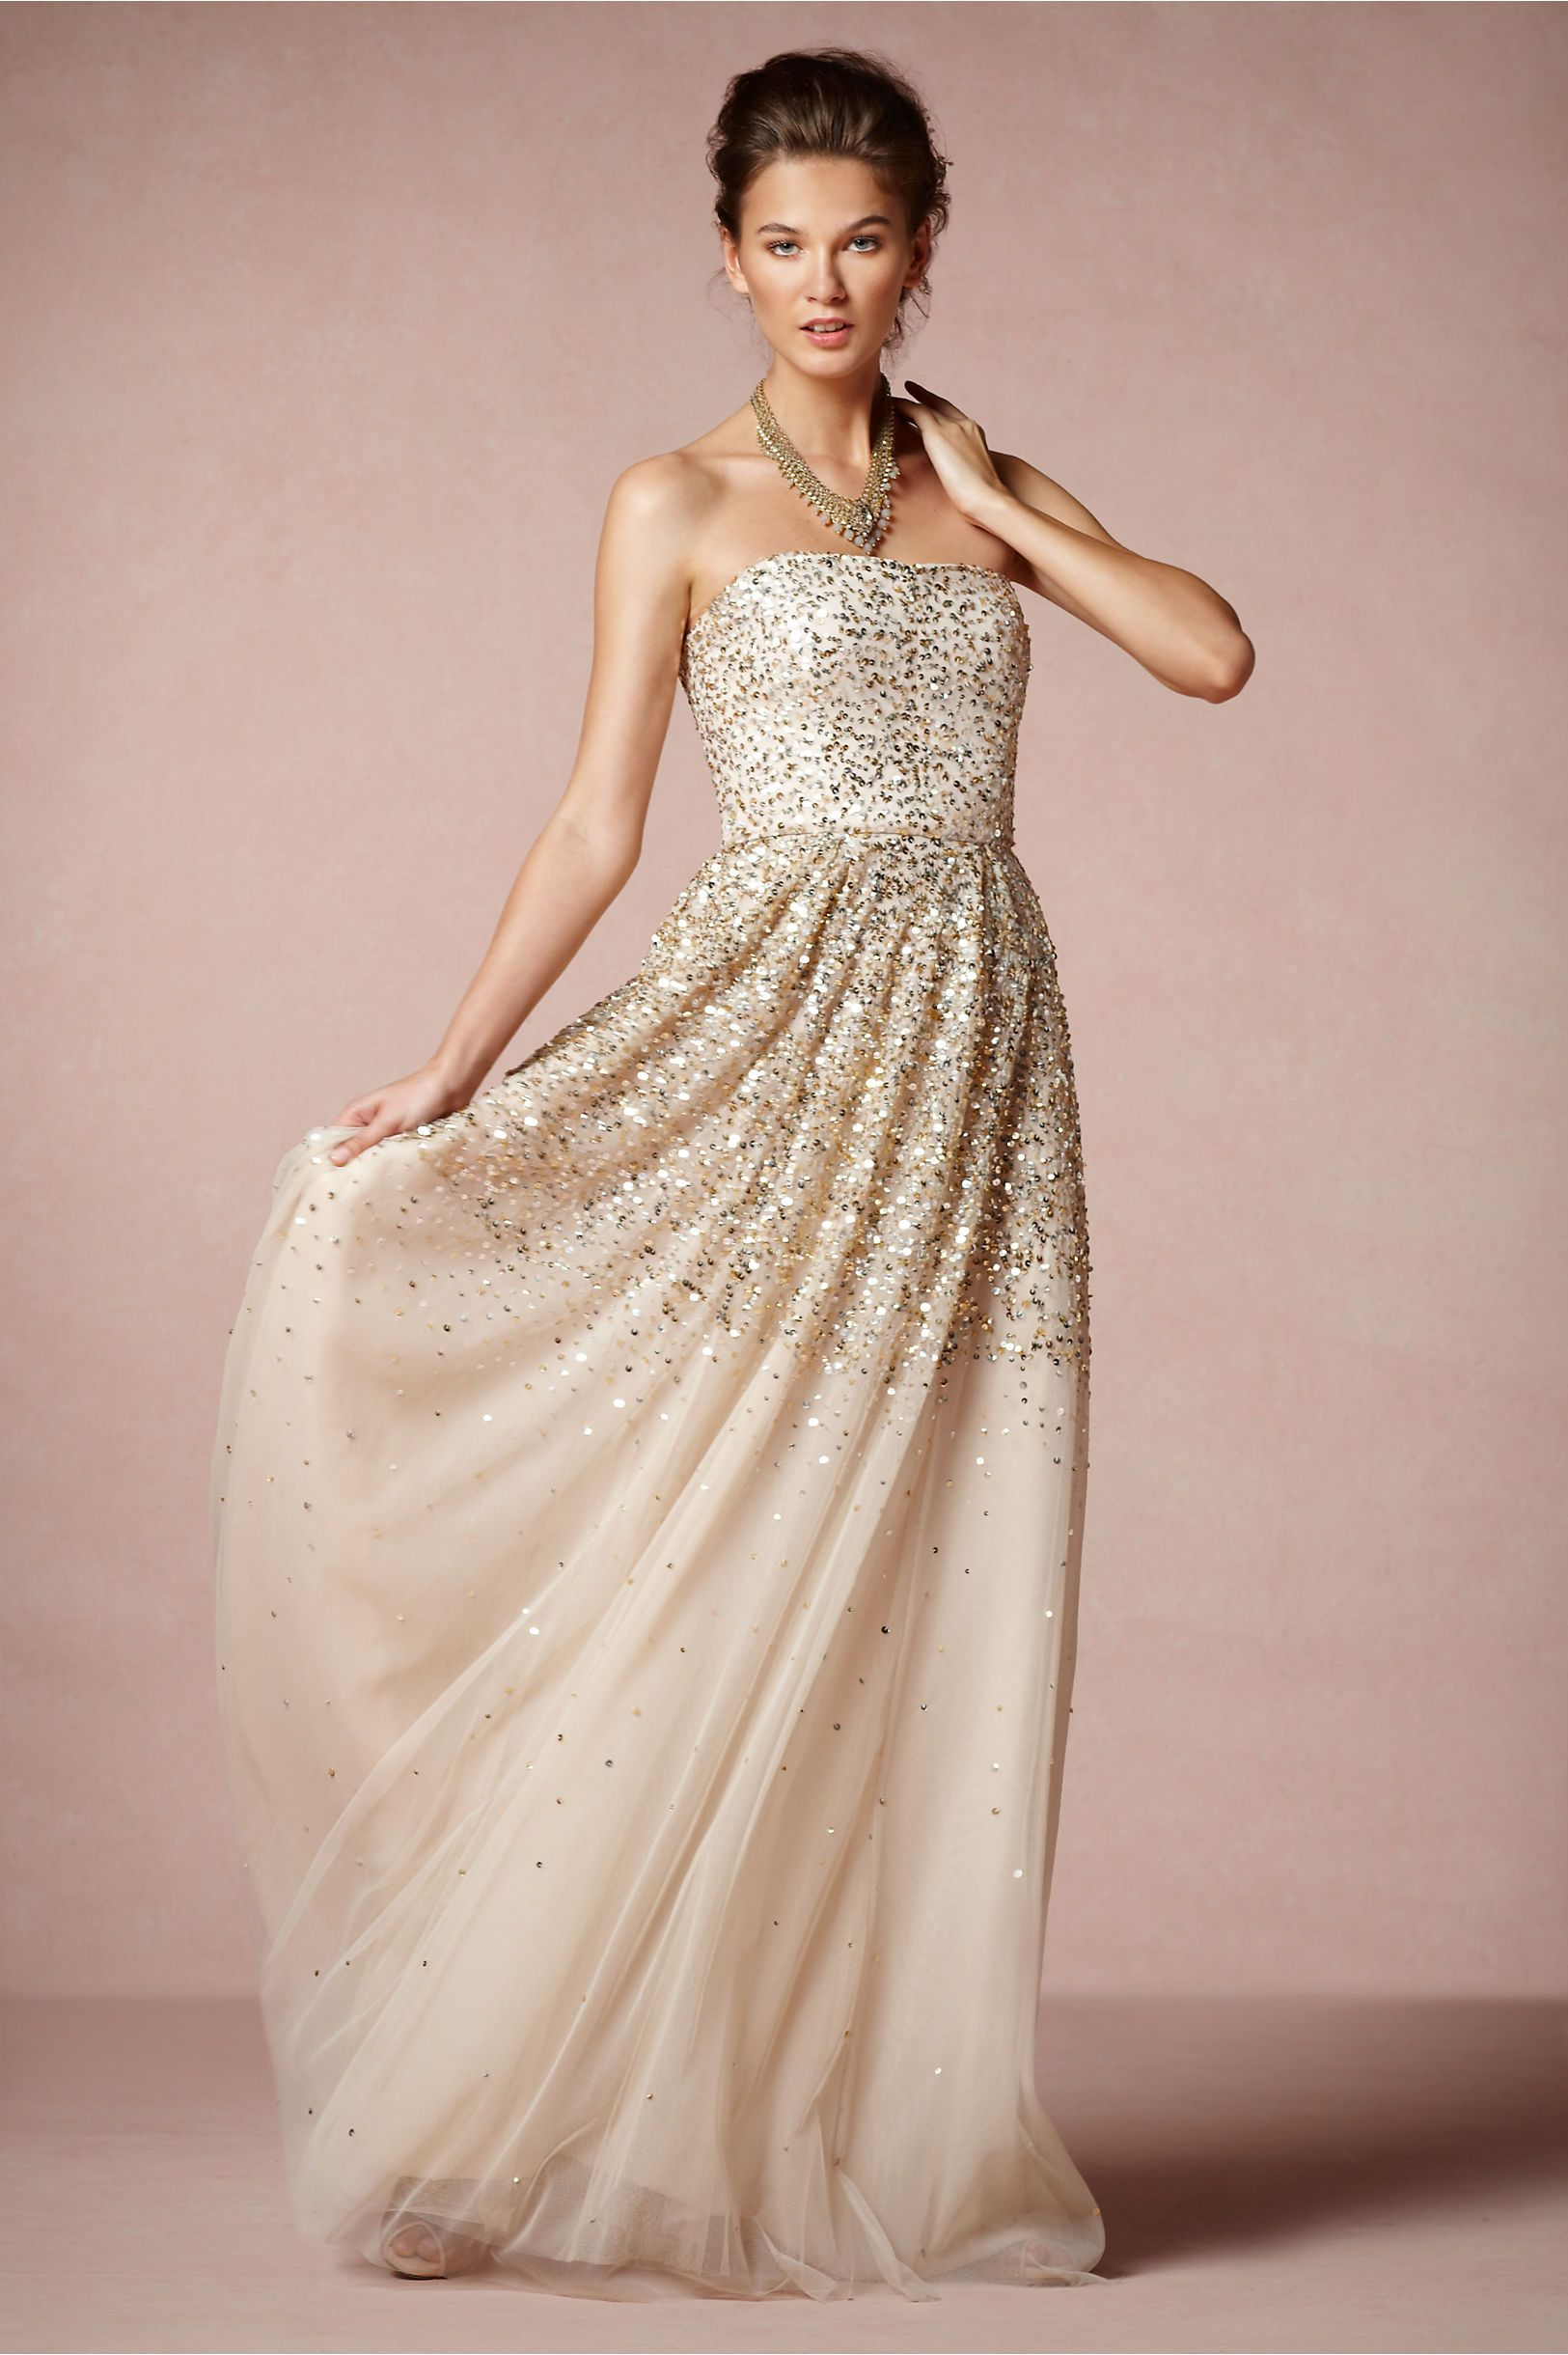 glitter wedding dress BHLDN Rachel Gilbert s Isadora Size 5 Wedding Dress